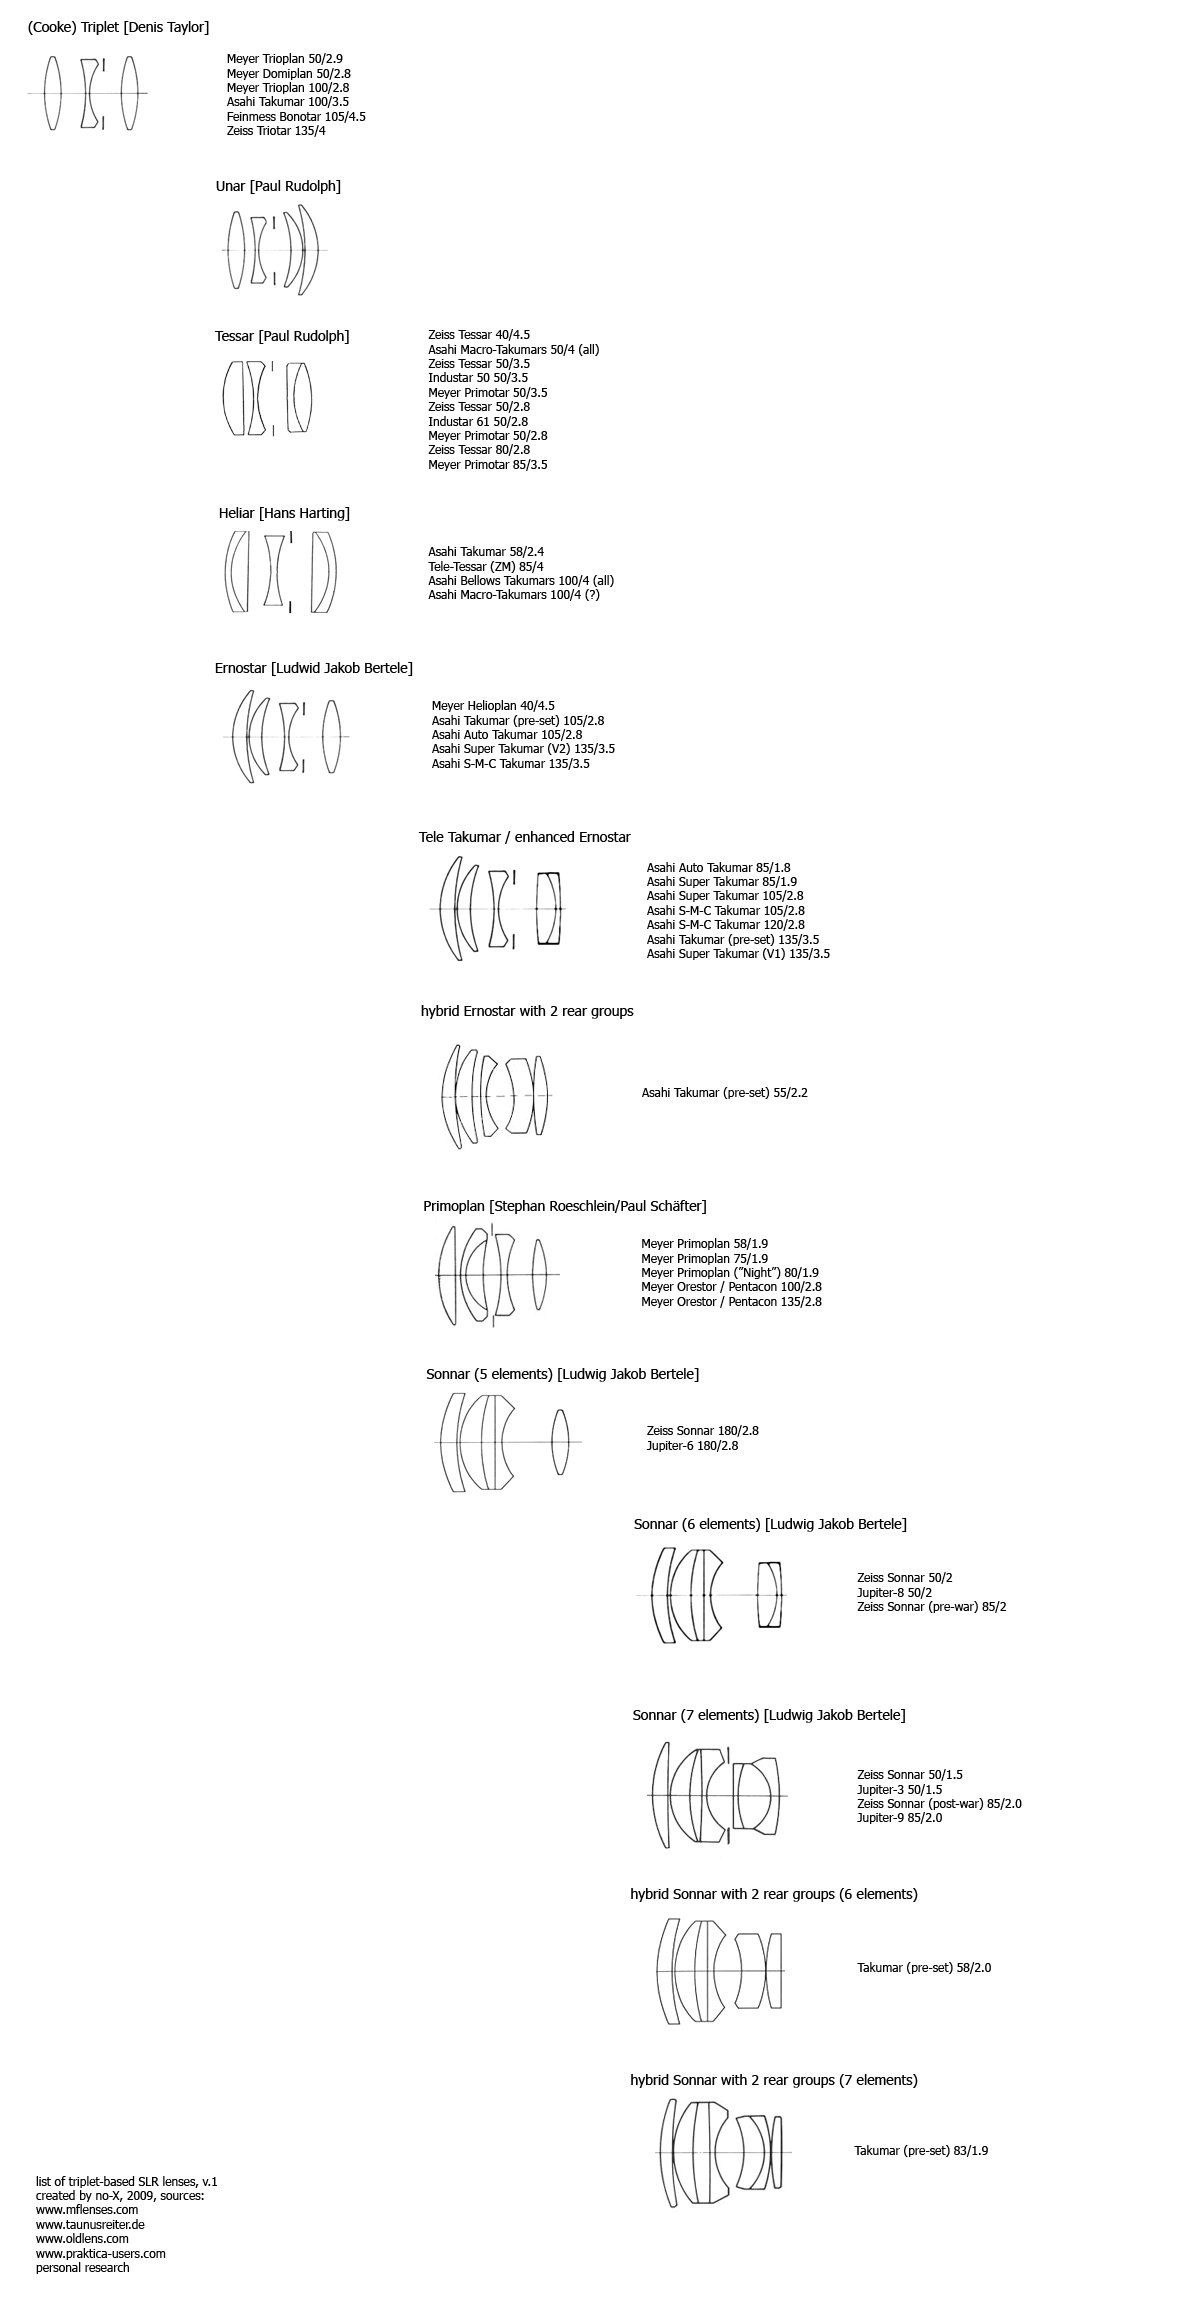 List of lens diagrams triplets planars hybrid lenses i prepared a list of common triplet designs list of coresponding lenses because i was bored by searching on 10 websites whenever i needed this info pooptronica